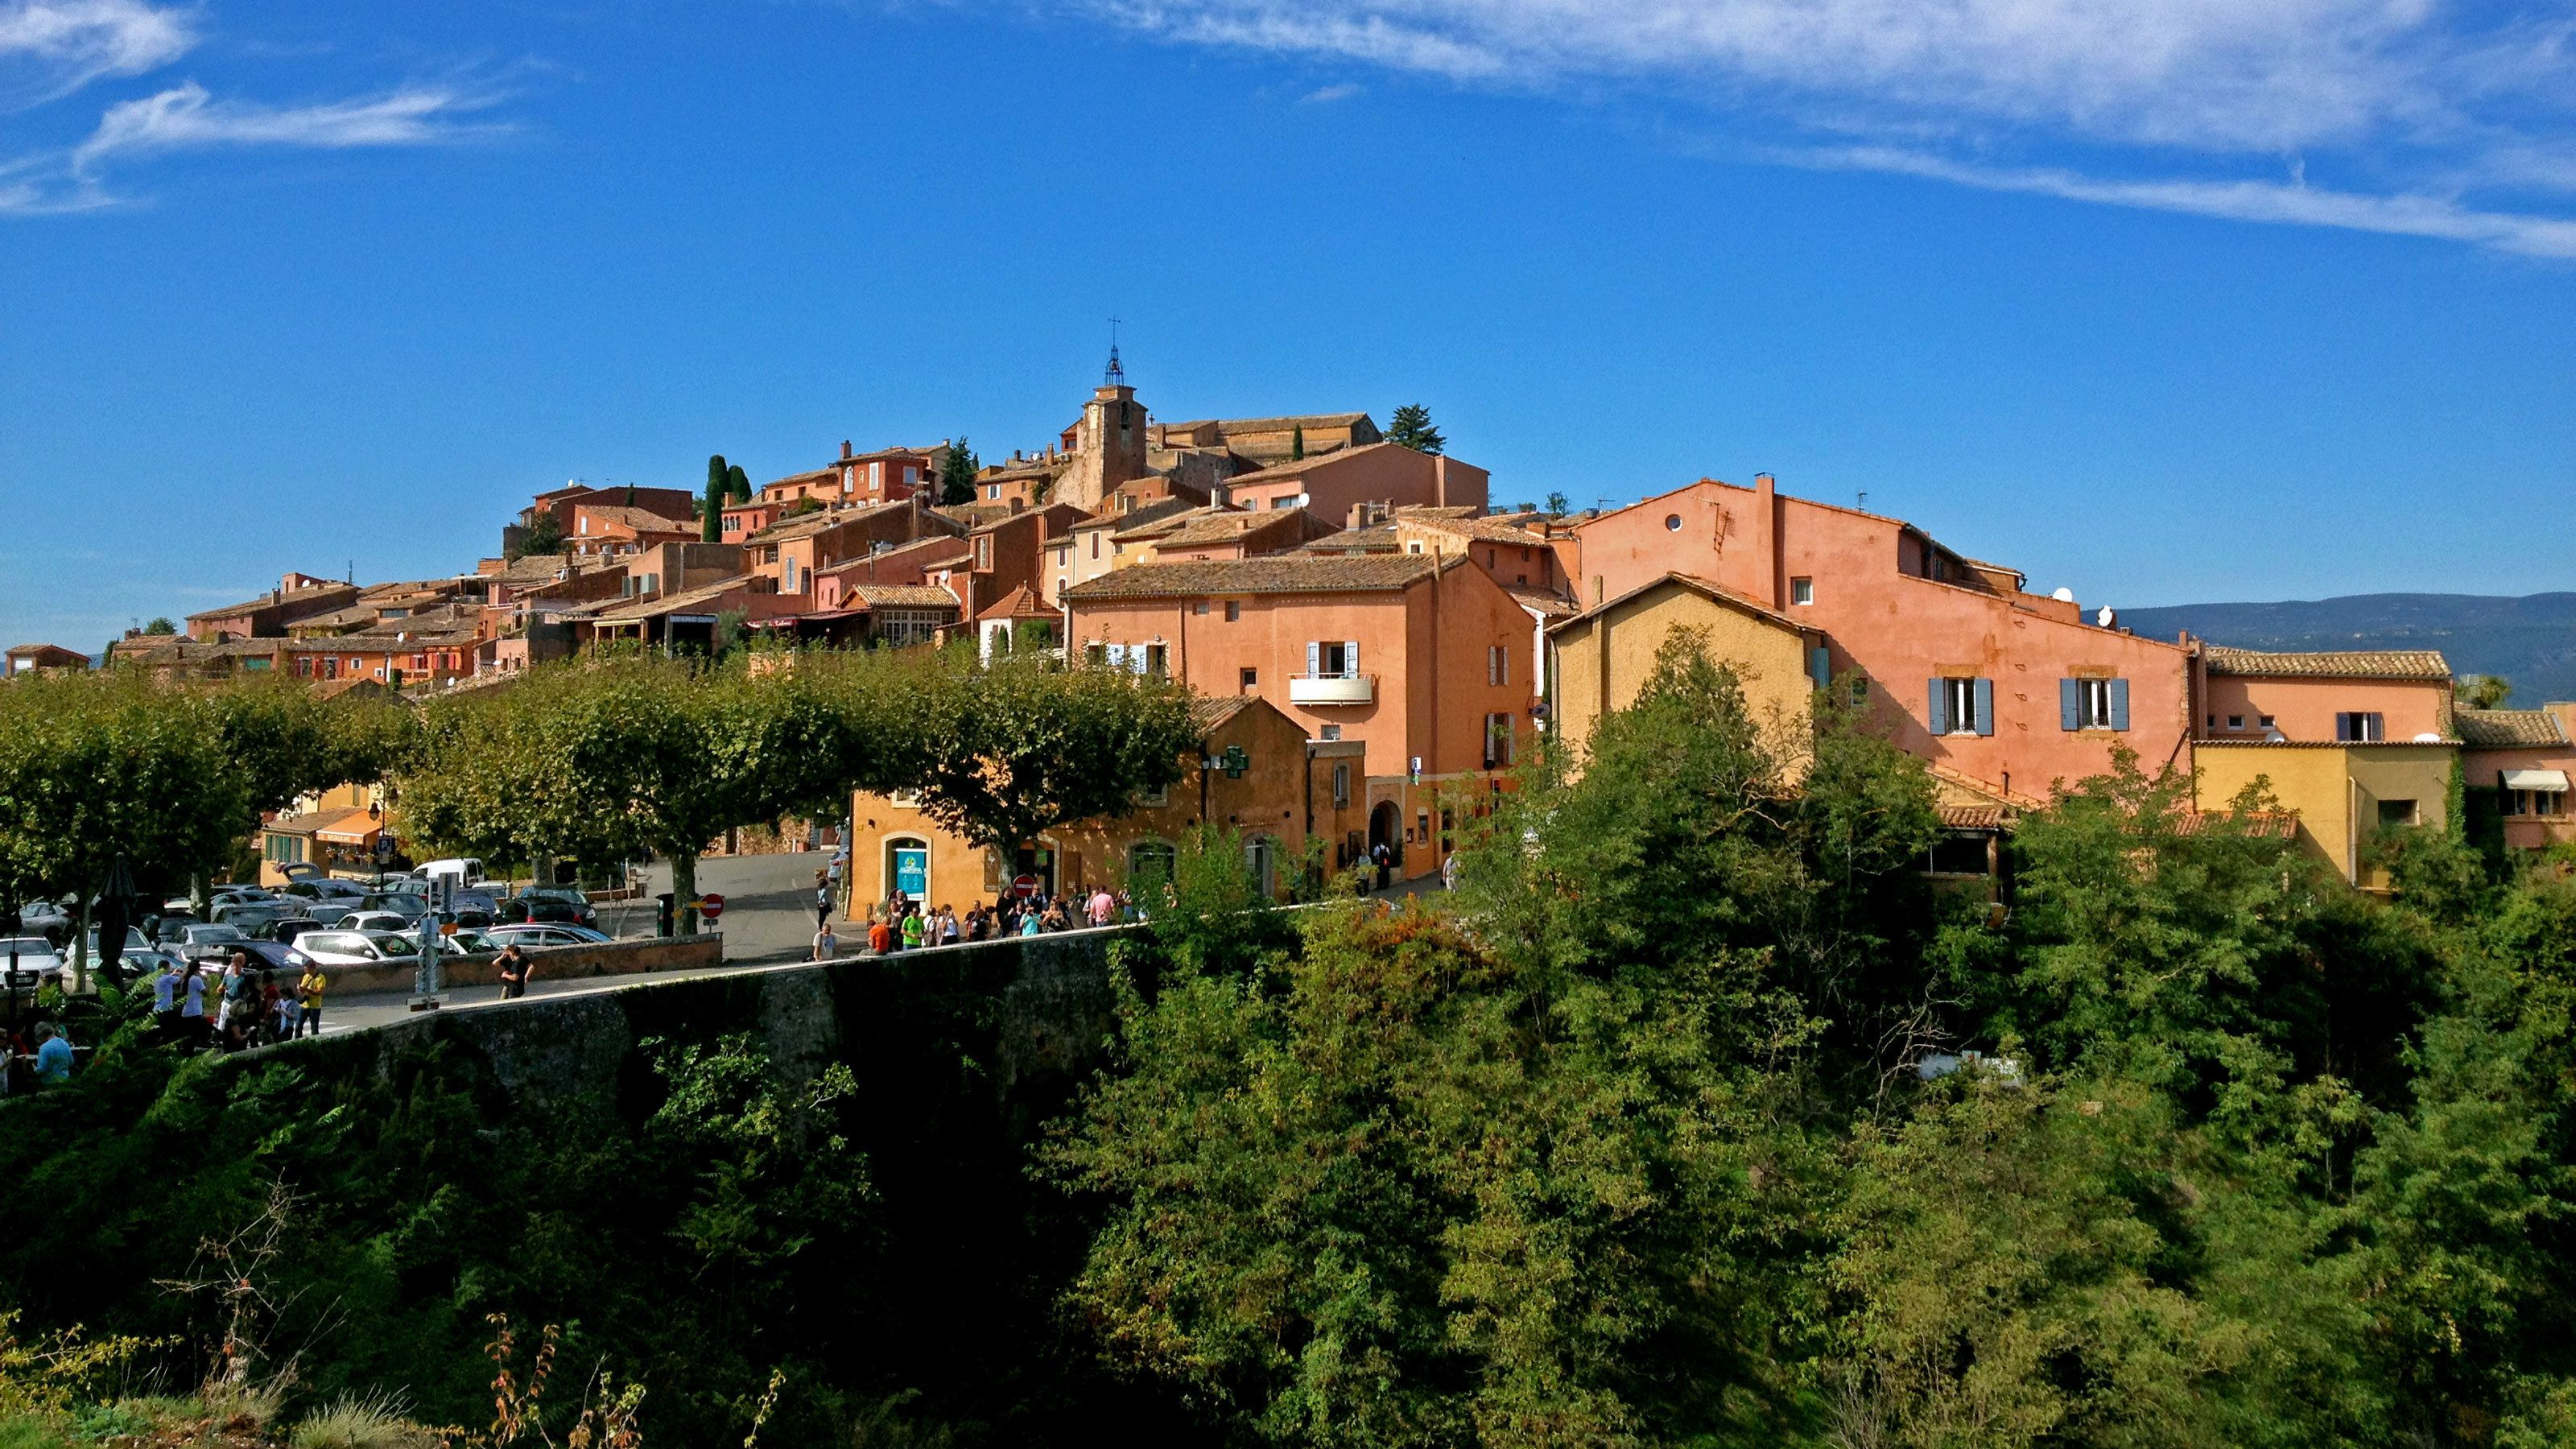 Red buildings in the town of Roussillon